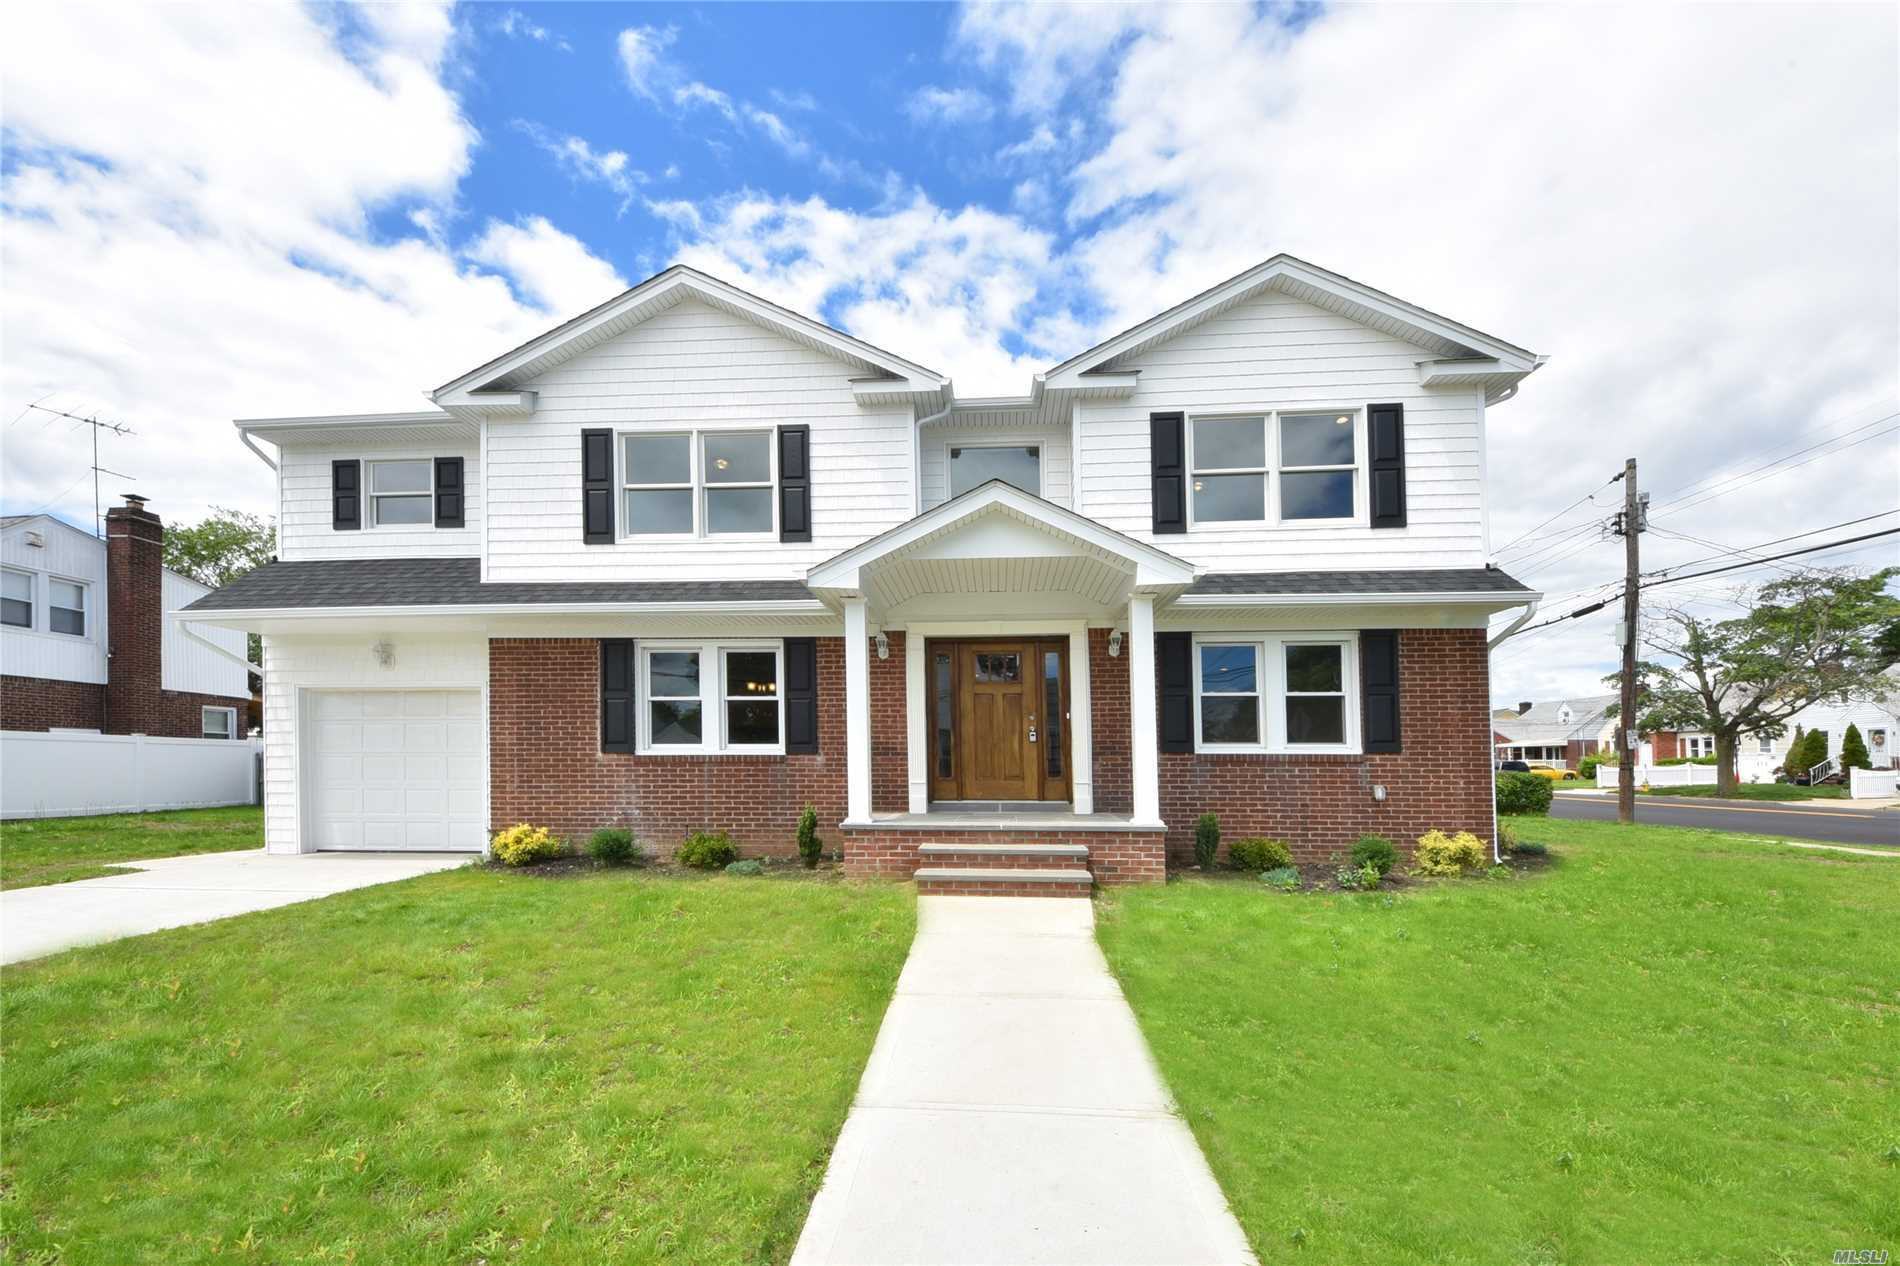 Totally Renovated From The Ground Up! This 5 Bedroom, 3.5 Bath Colonial Has An Open Floor Plan With Everything Any Buyer Could Want. Located Close To Parks, Shopping, And Transportation.